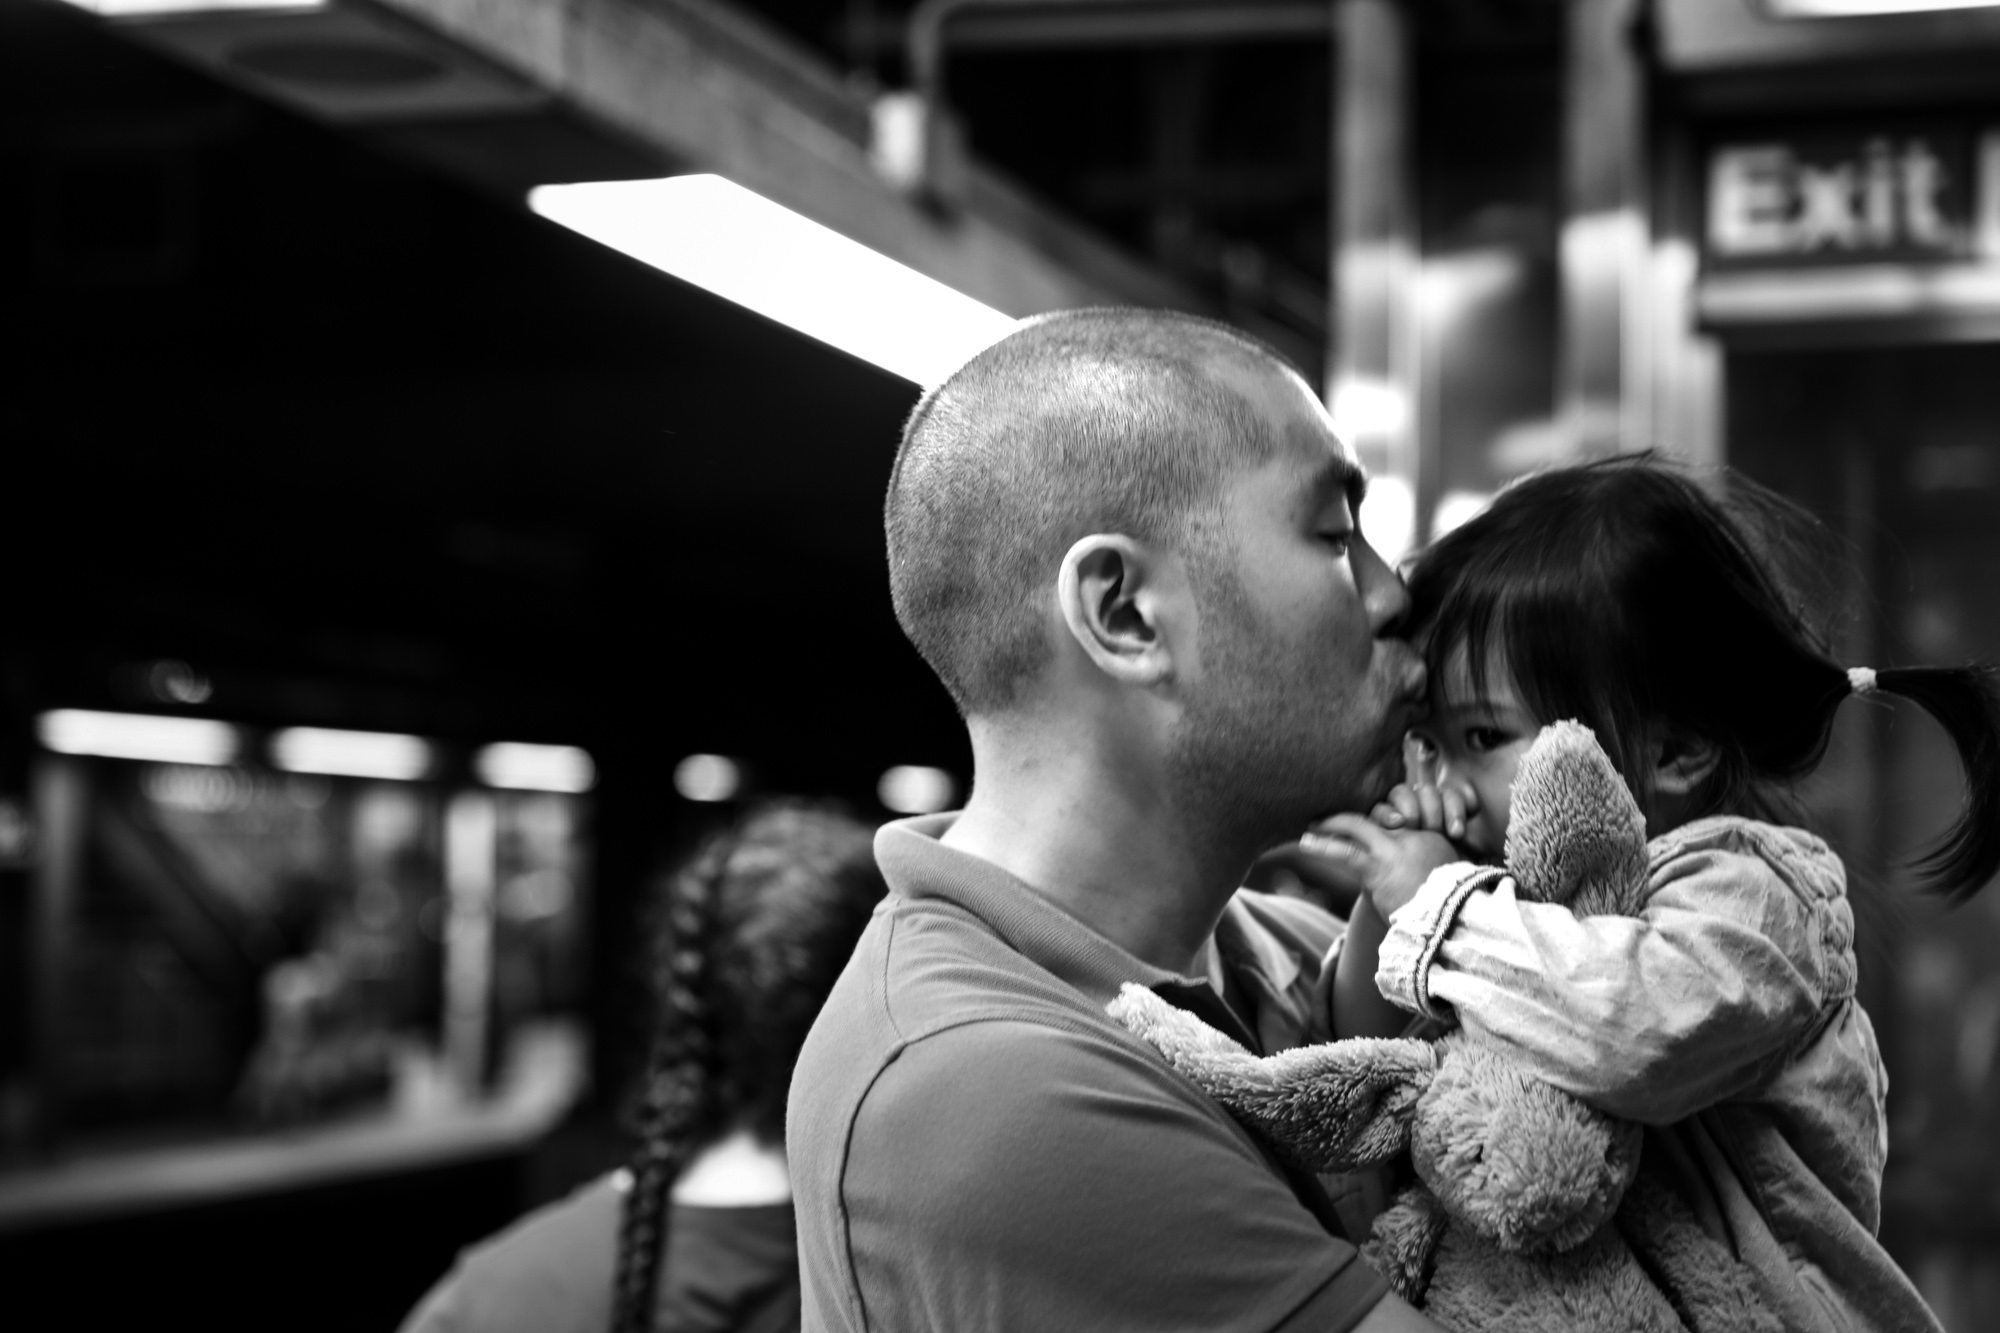 Man kisses girl on her forehead while she holds a stuffed bunny and sucks her thumb